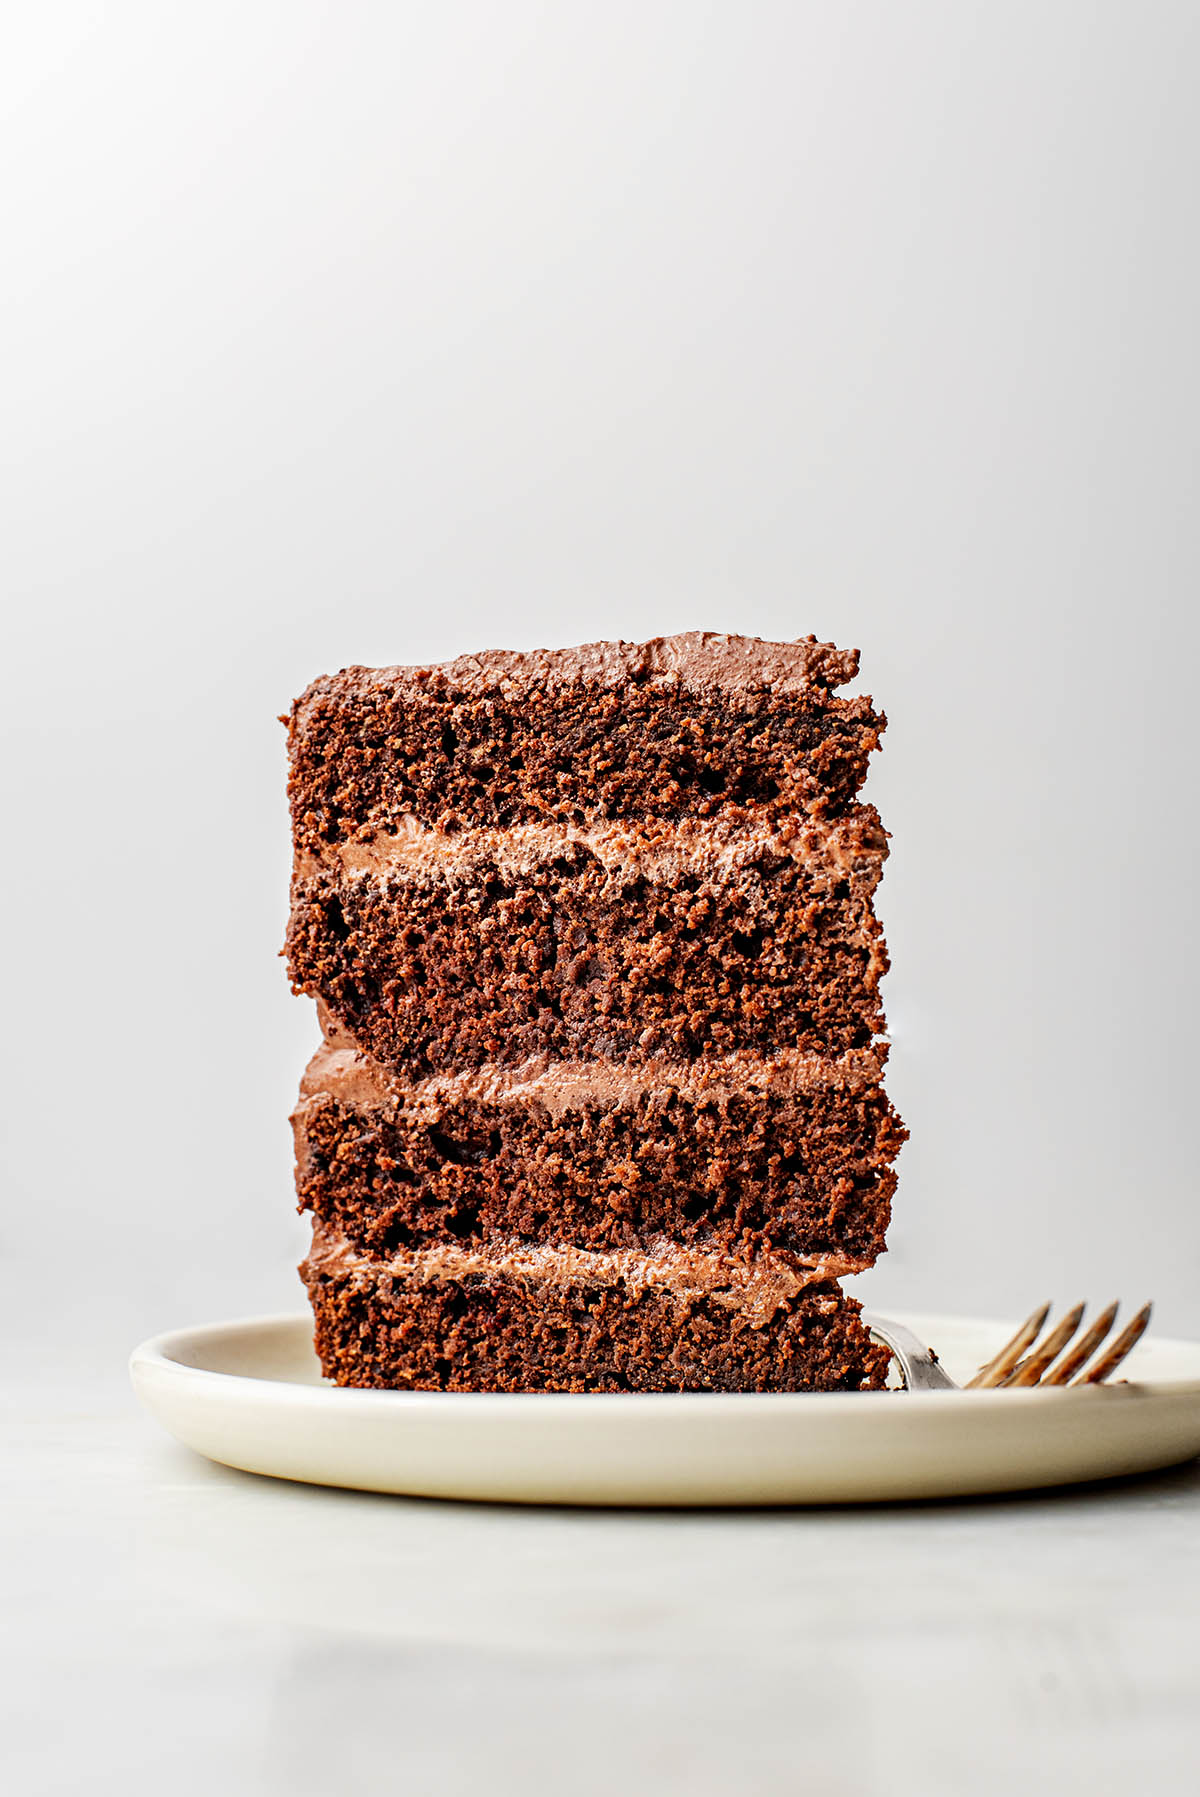 A slice of chocolate layer cake standing on a plate.